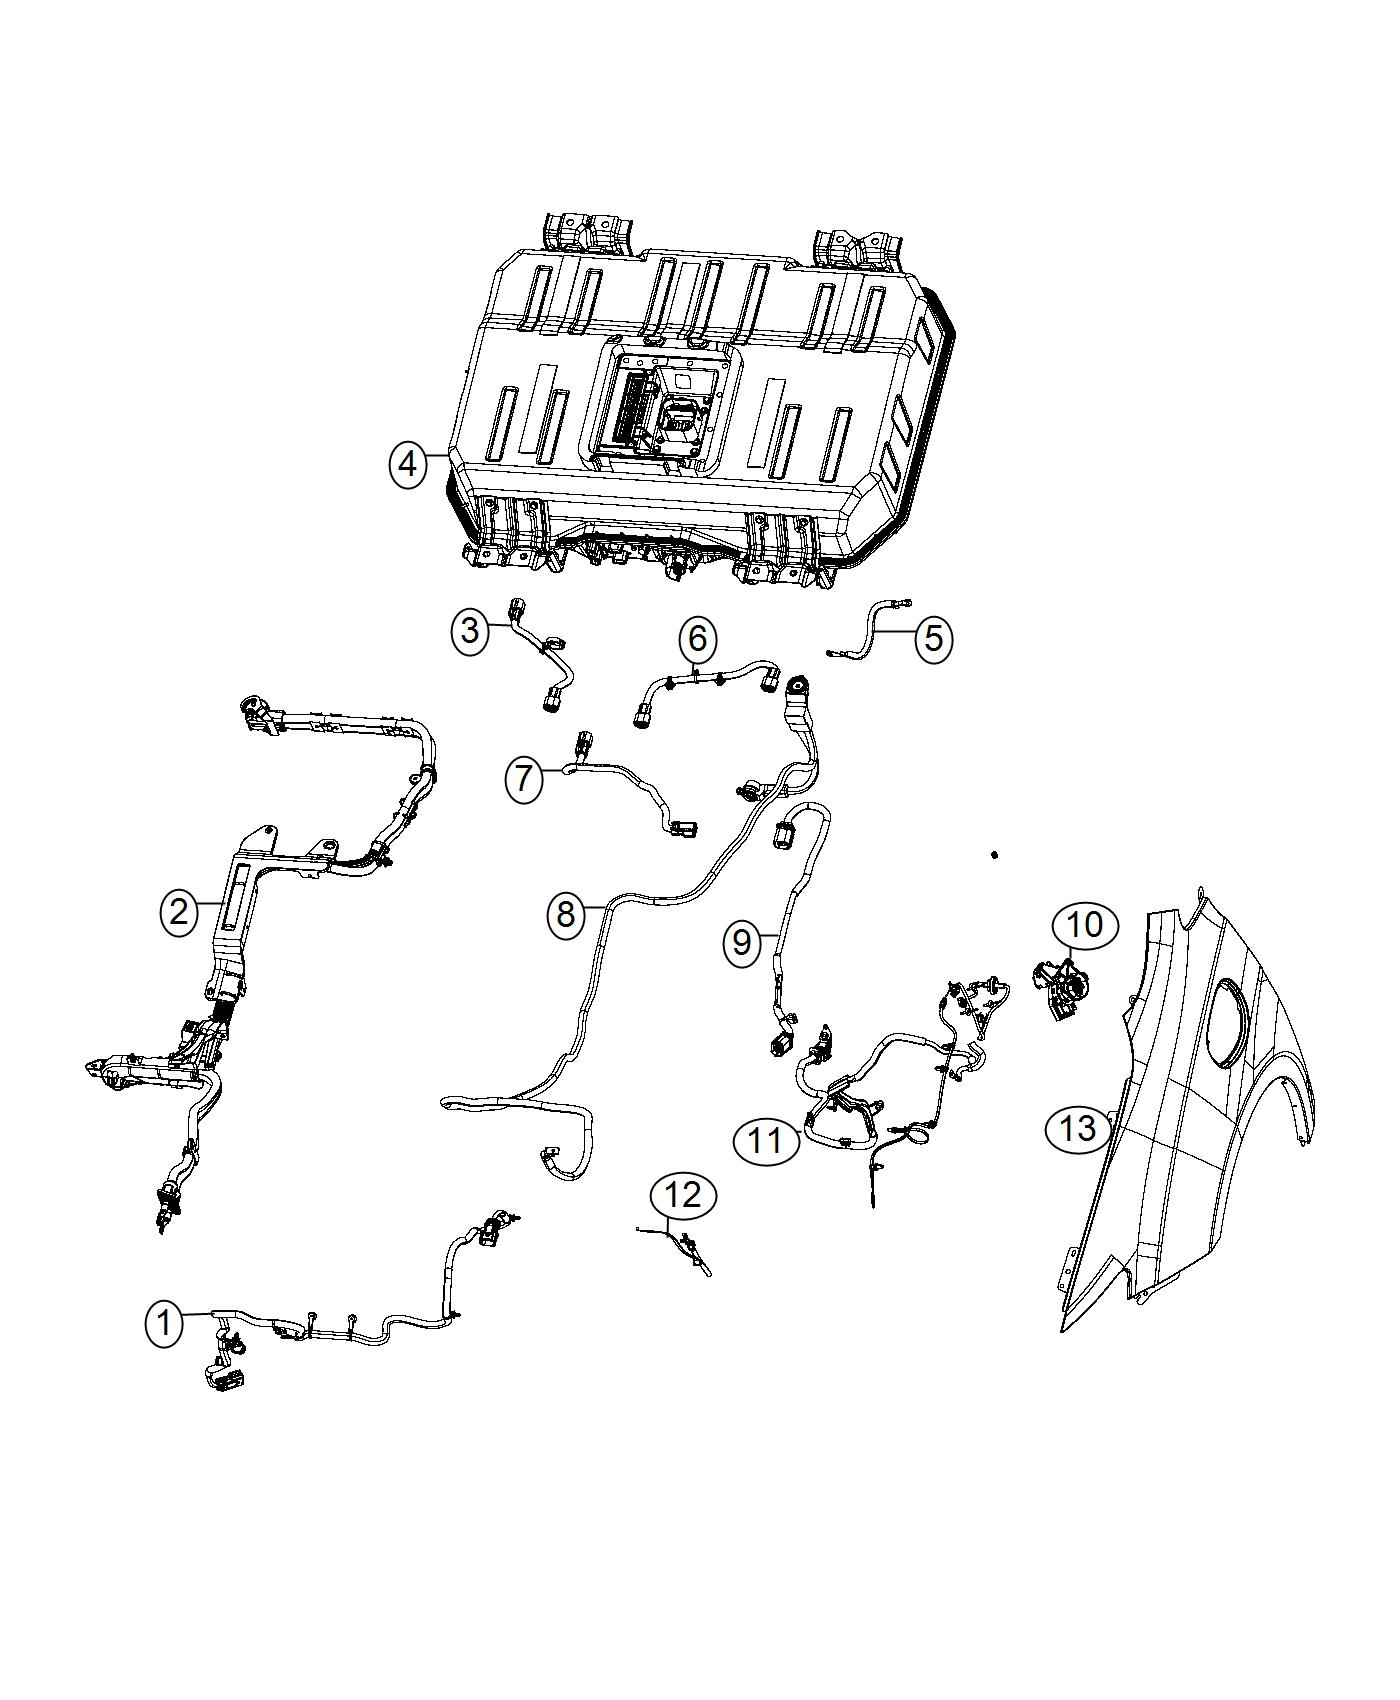 Chrysler Pacifica Wiring  Charge Port In Line   Phev Adaptation Components